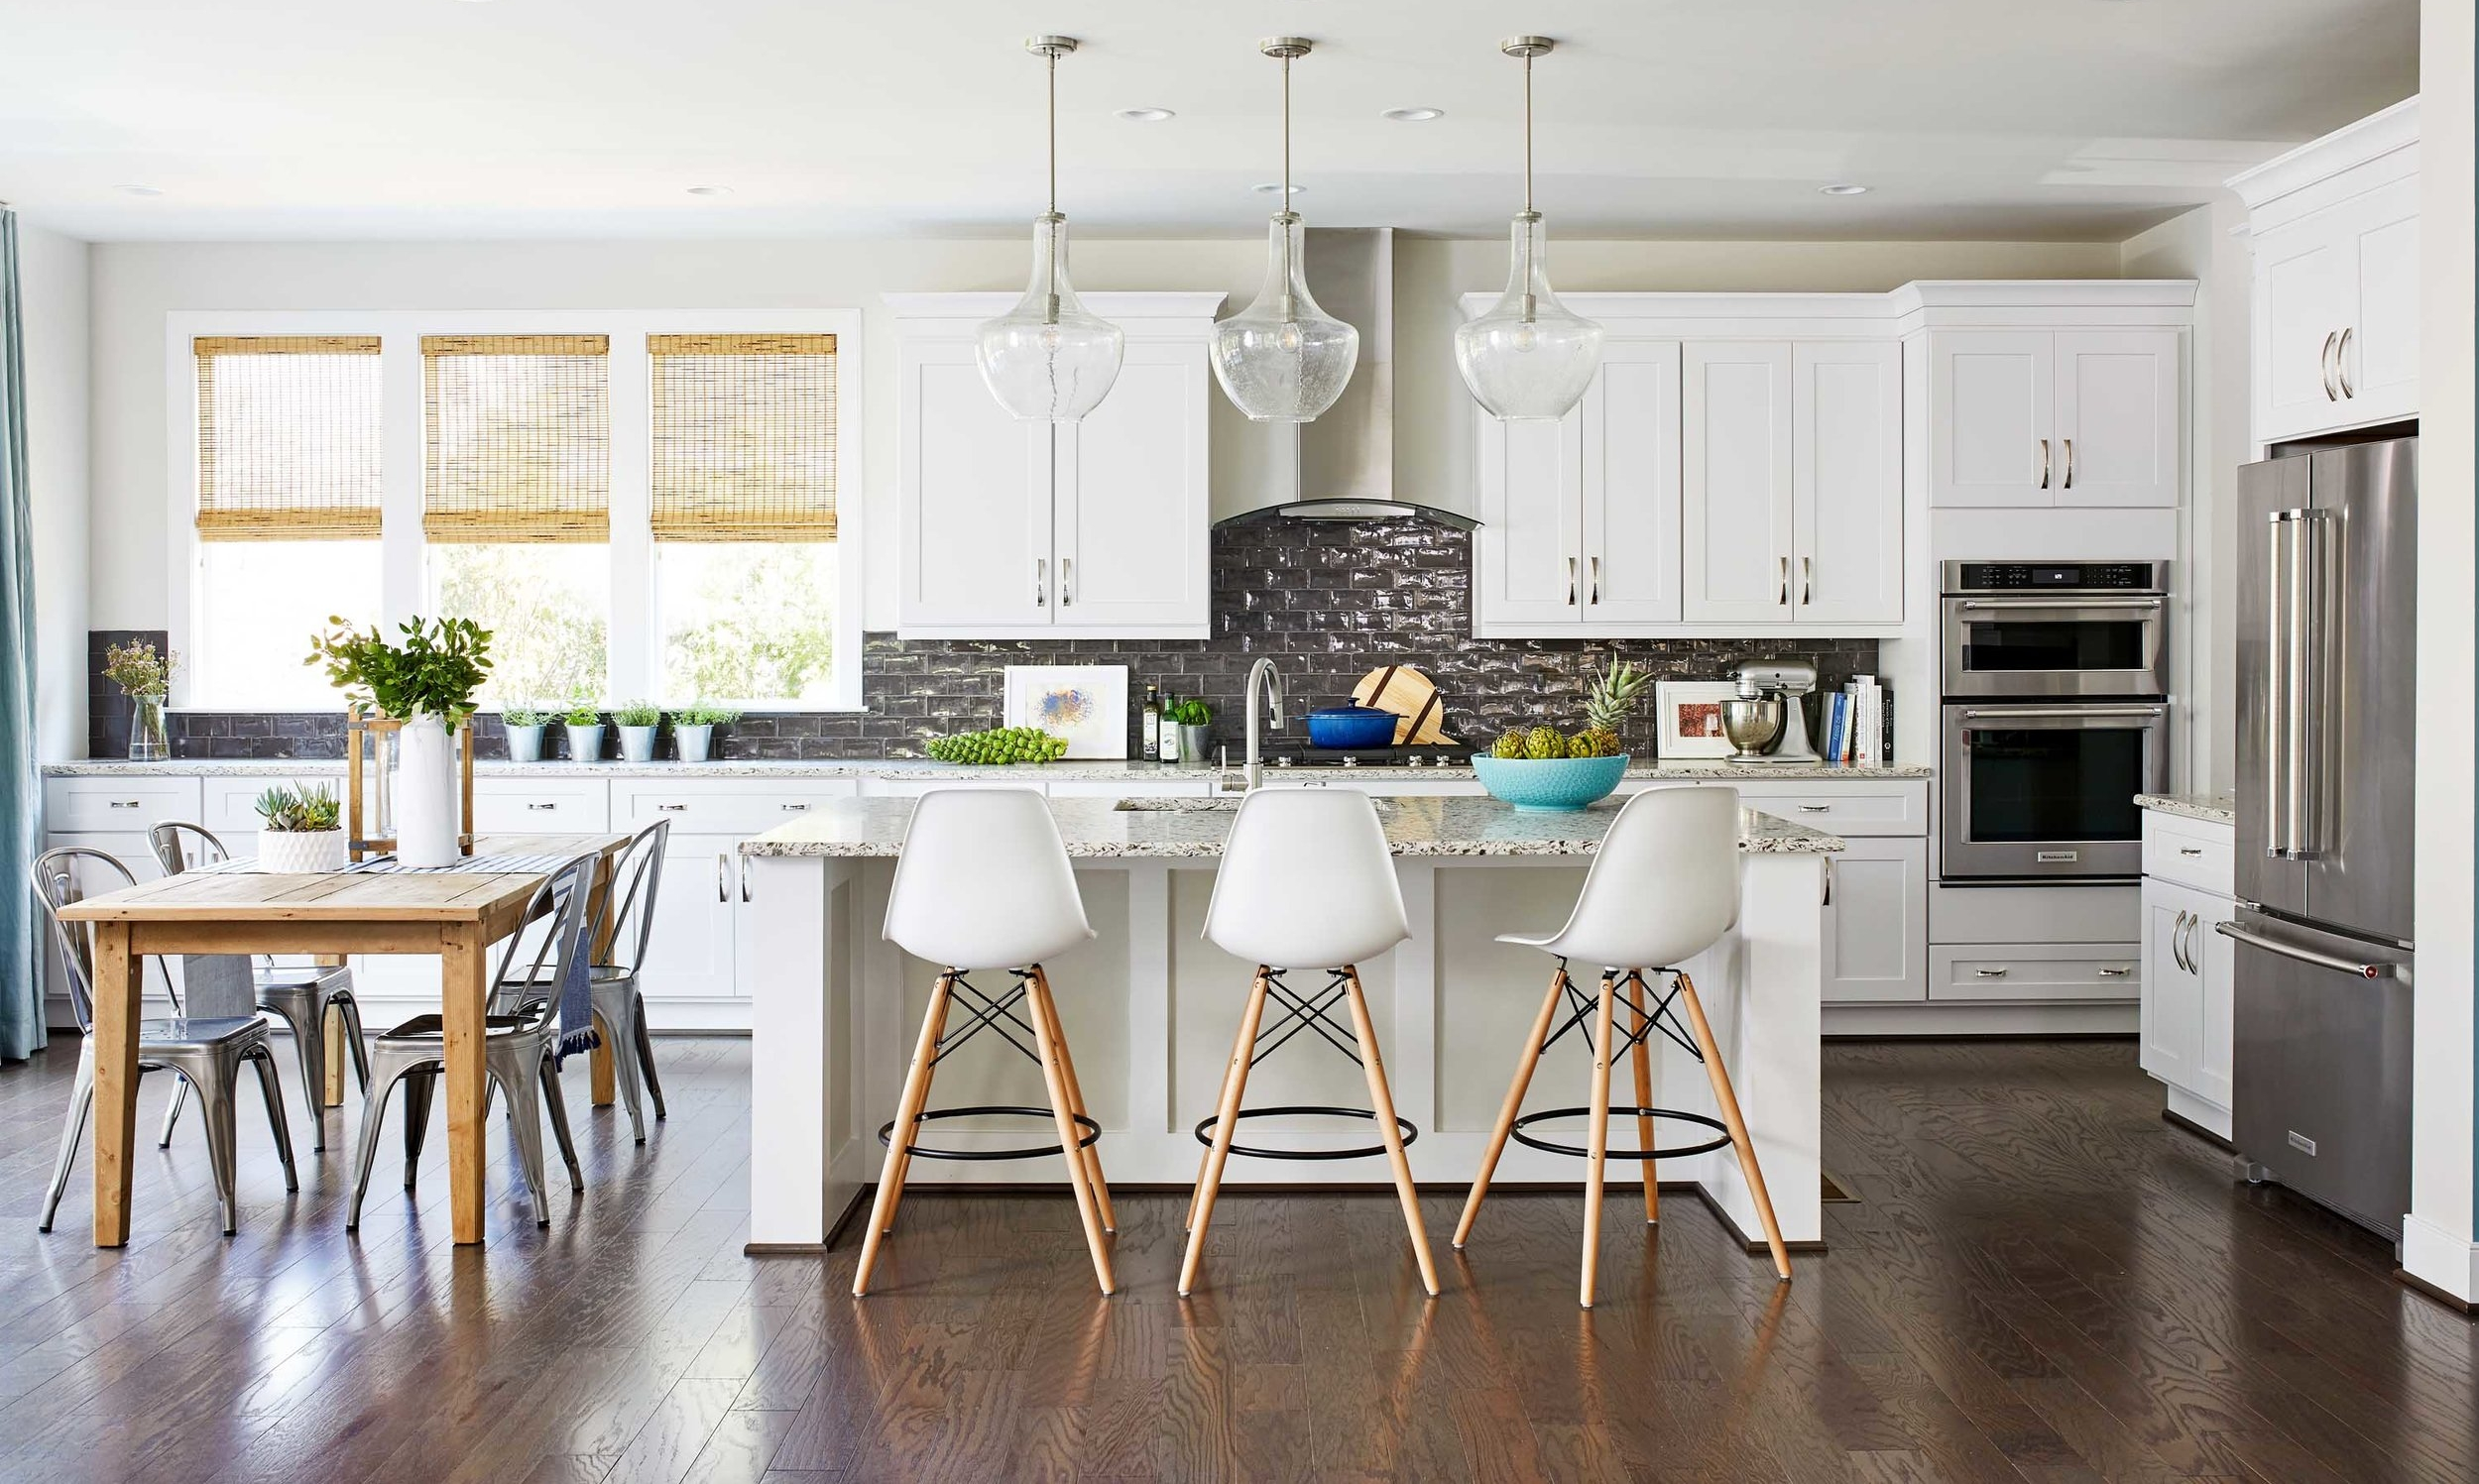 Open kitchen with white cabinets and metal backsplash best of Boston Cambridge DC top-designers Dane Austin Design